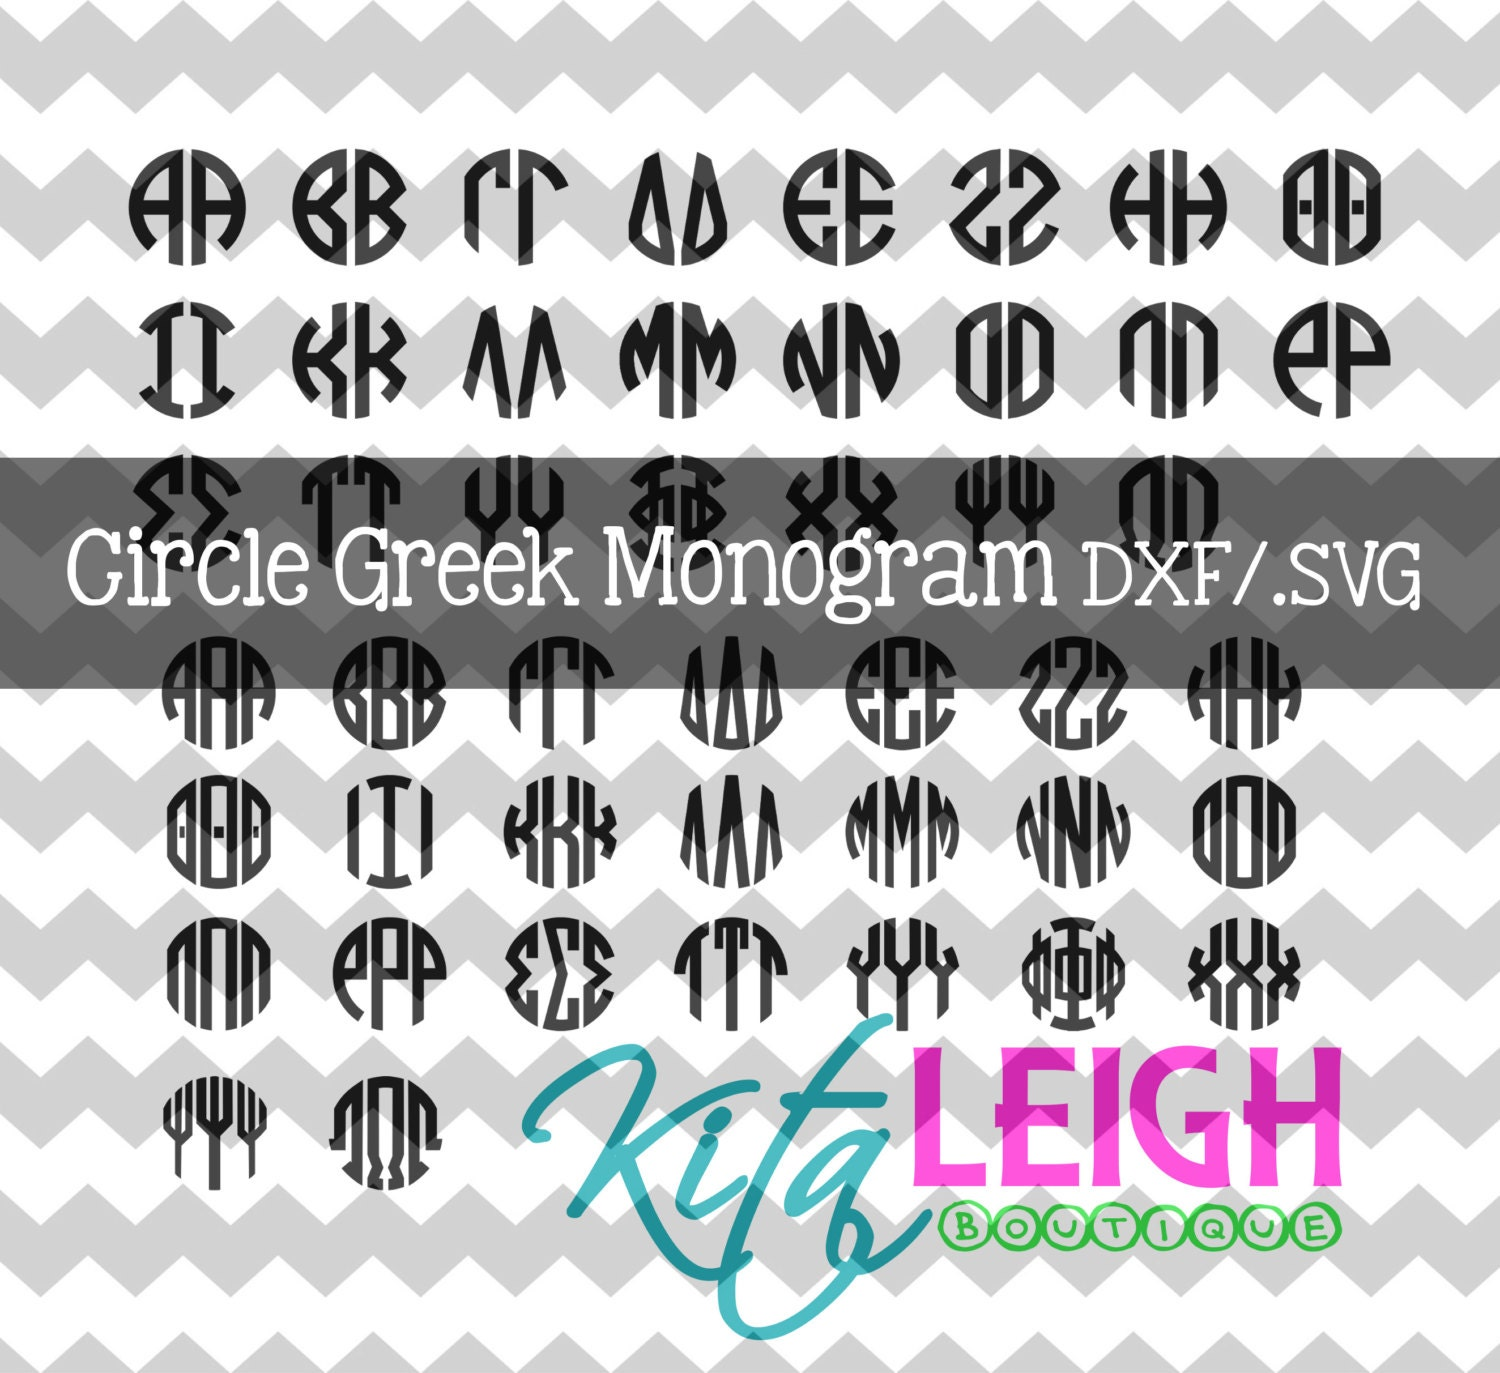 Circle Greek Monogram Alphabet .DXF/.SVG File for use with